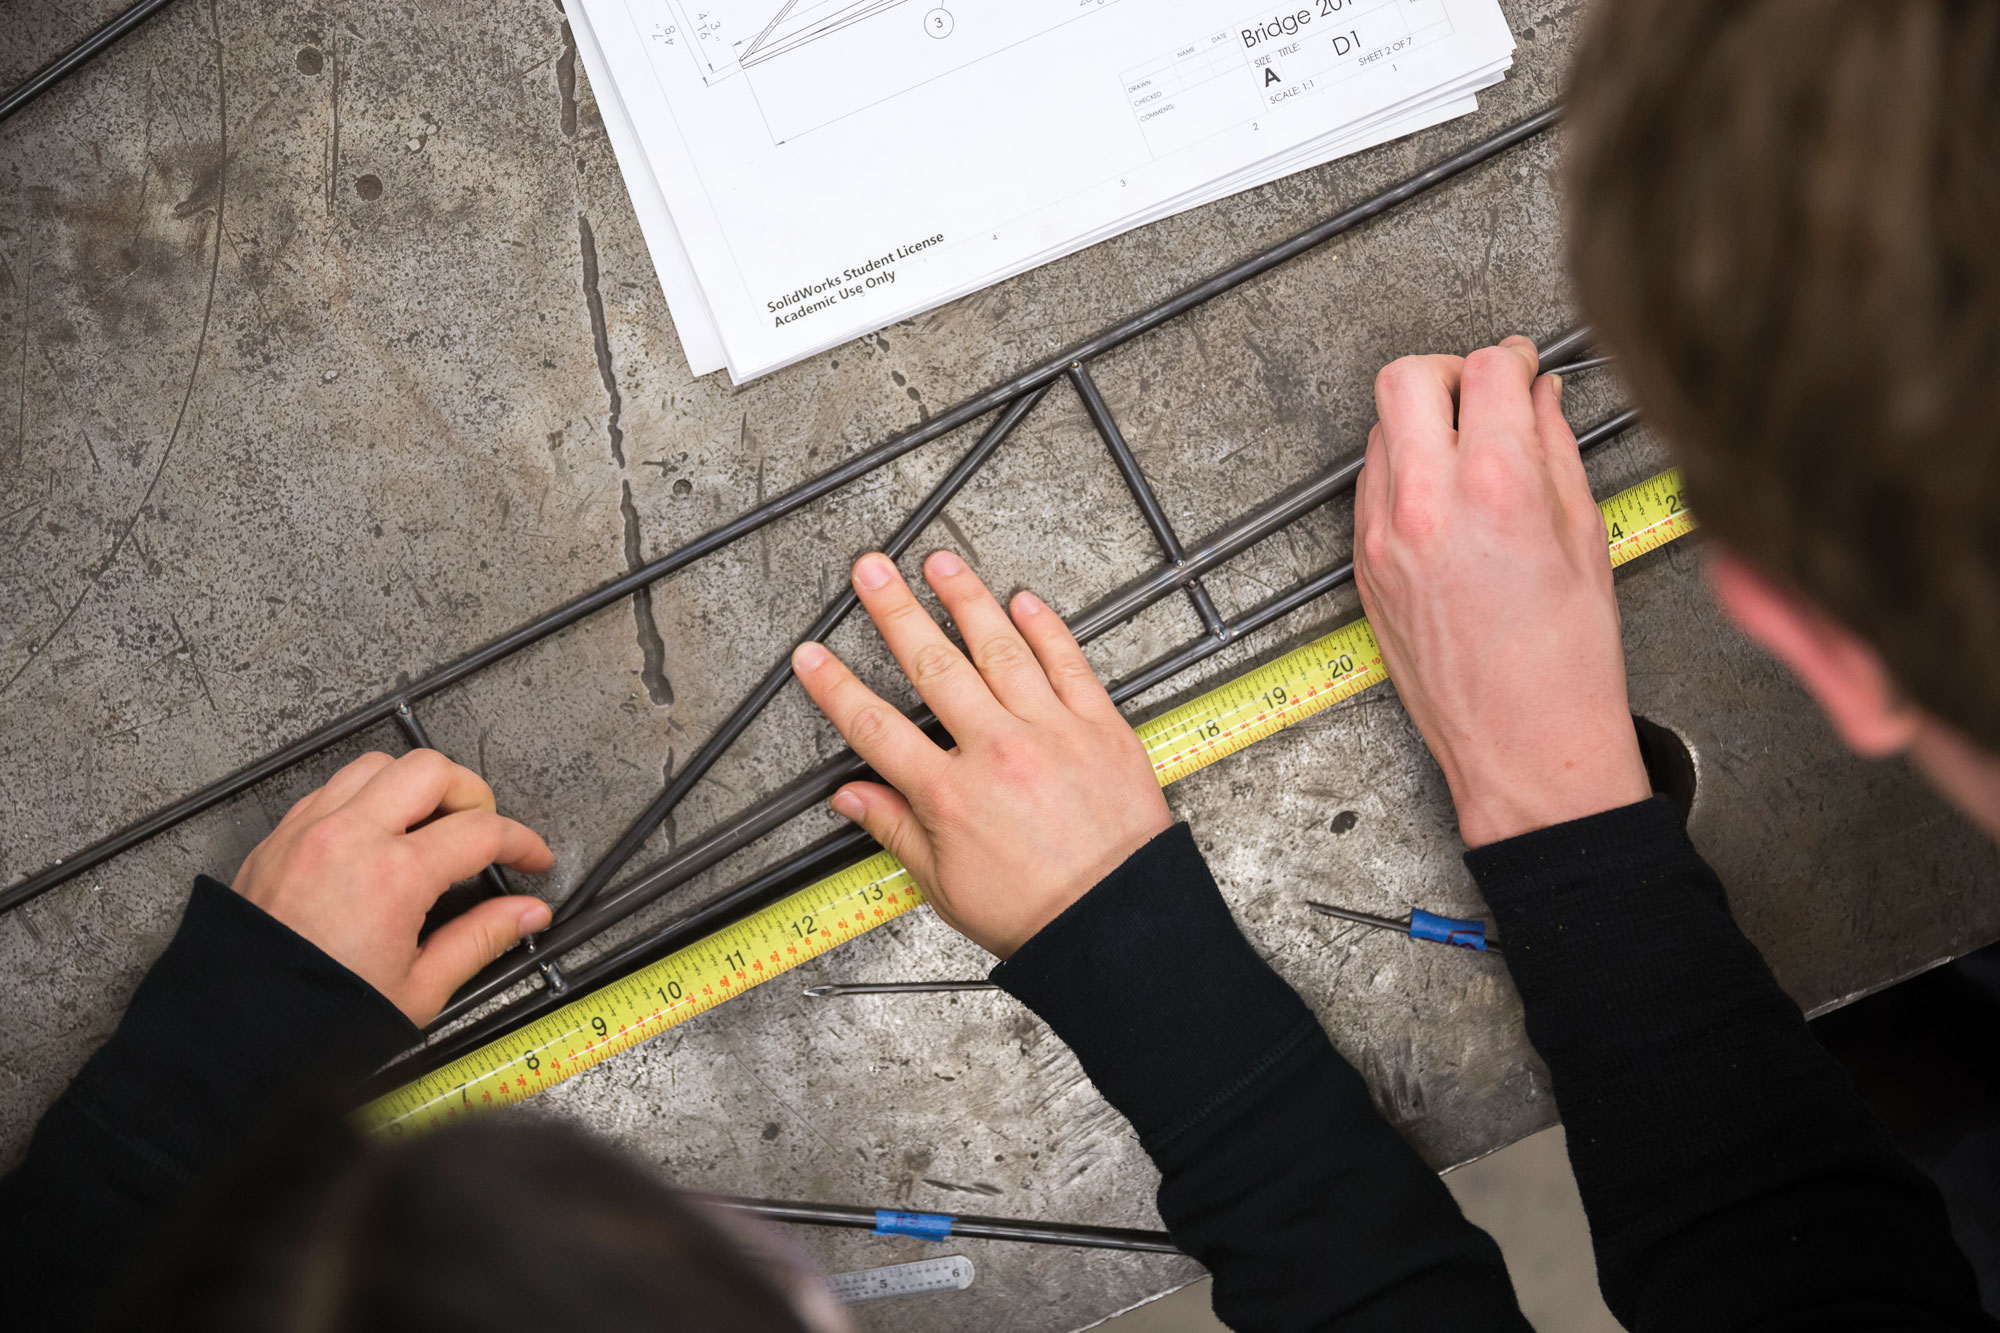 Aerial photo overlooking two students' hands with a ruler and other tools